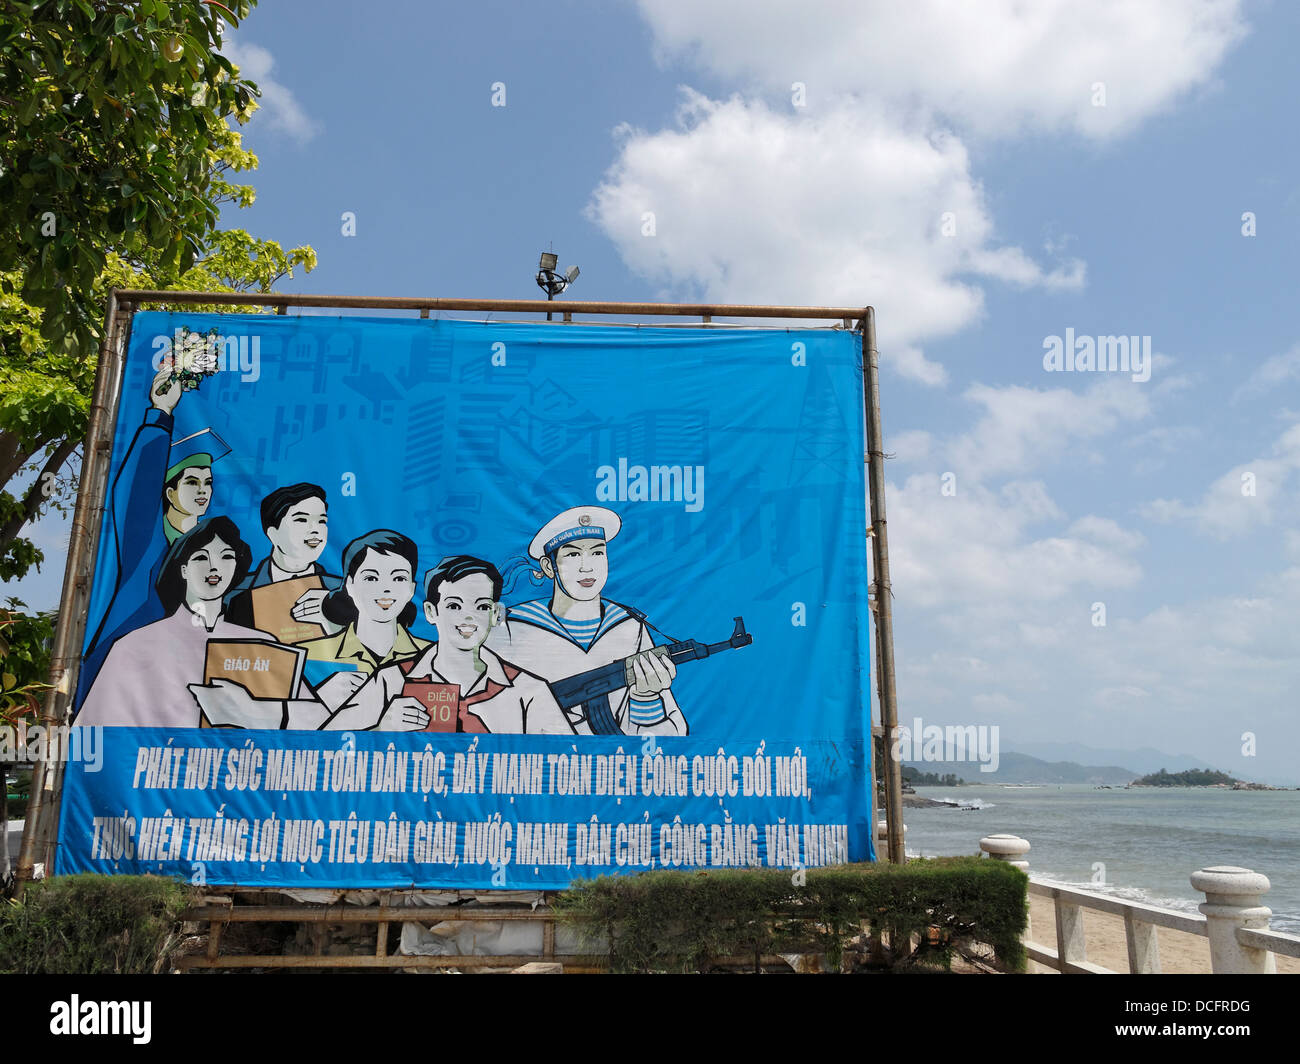 A propaganda poster next to the beach in Nha Trang, Vietnam. - Stock Image